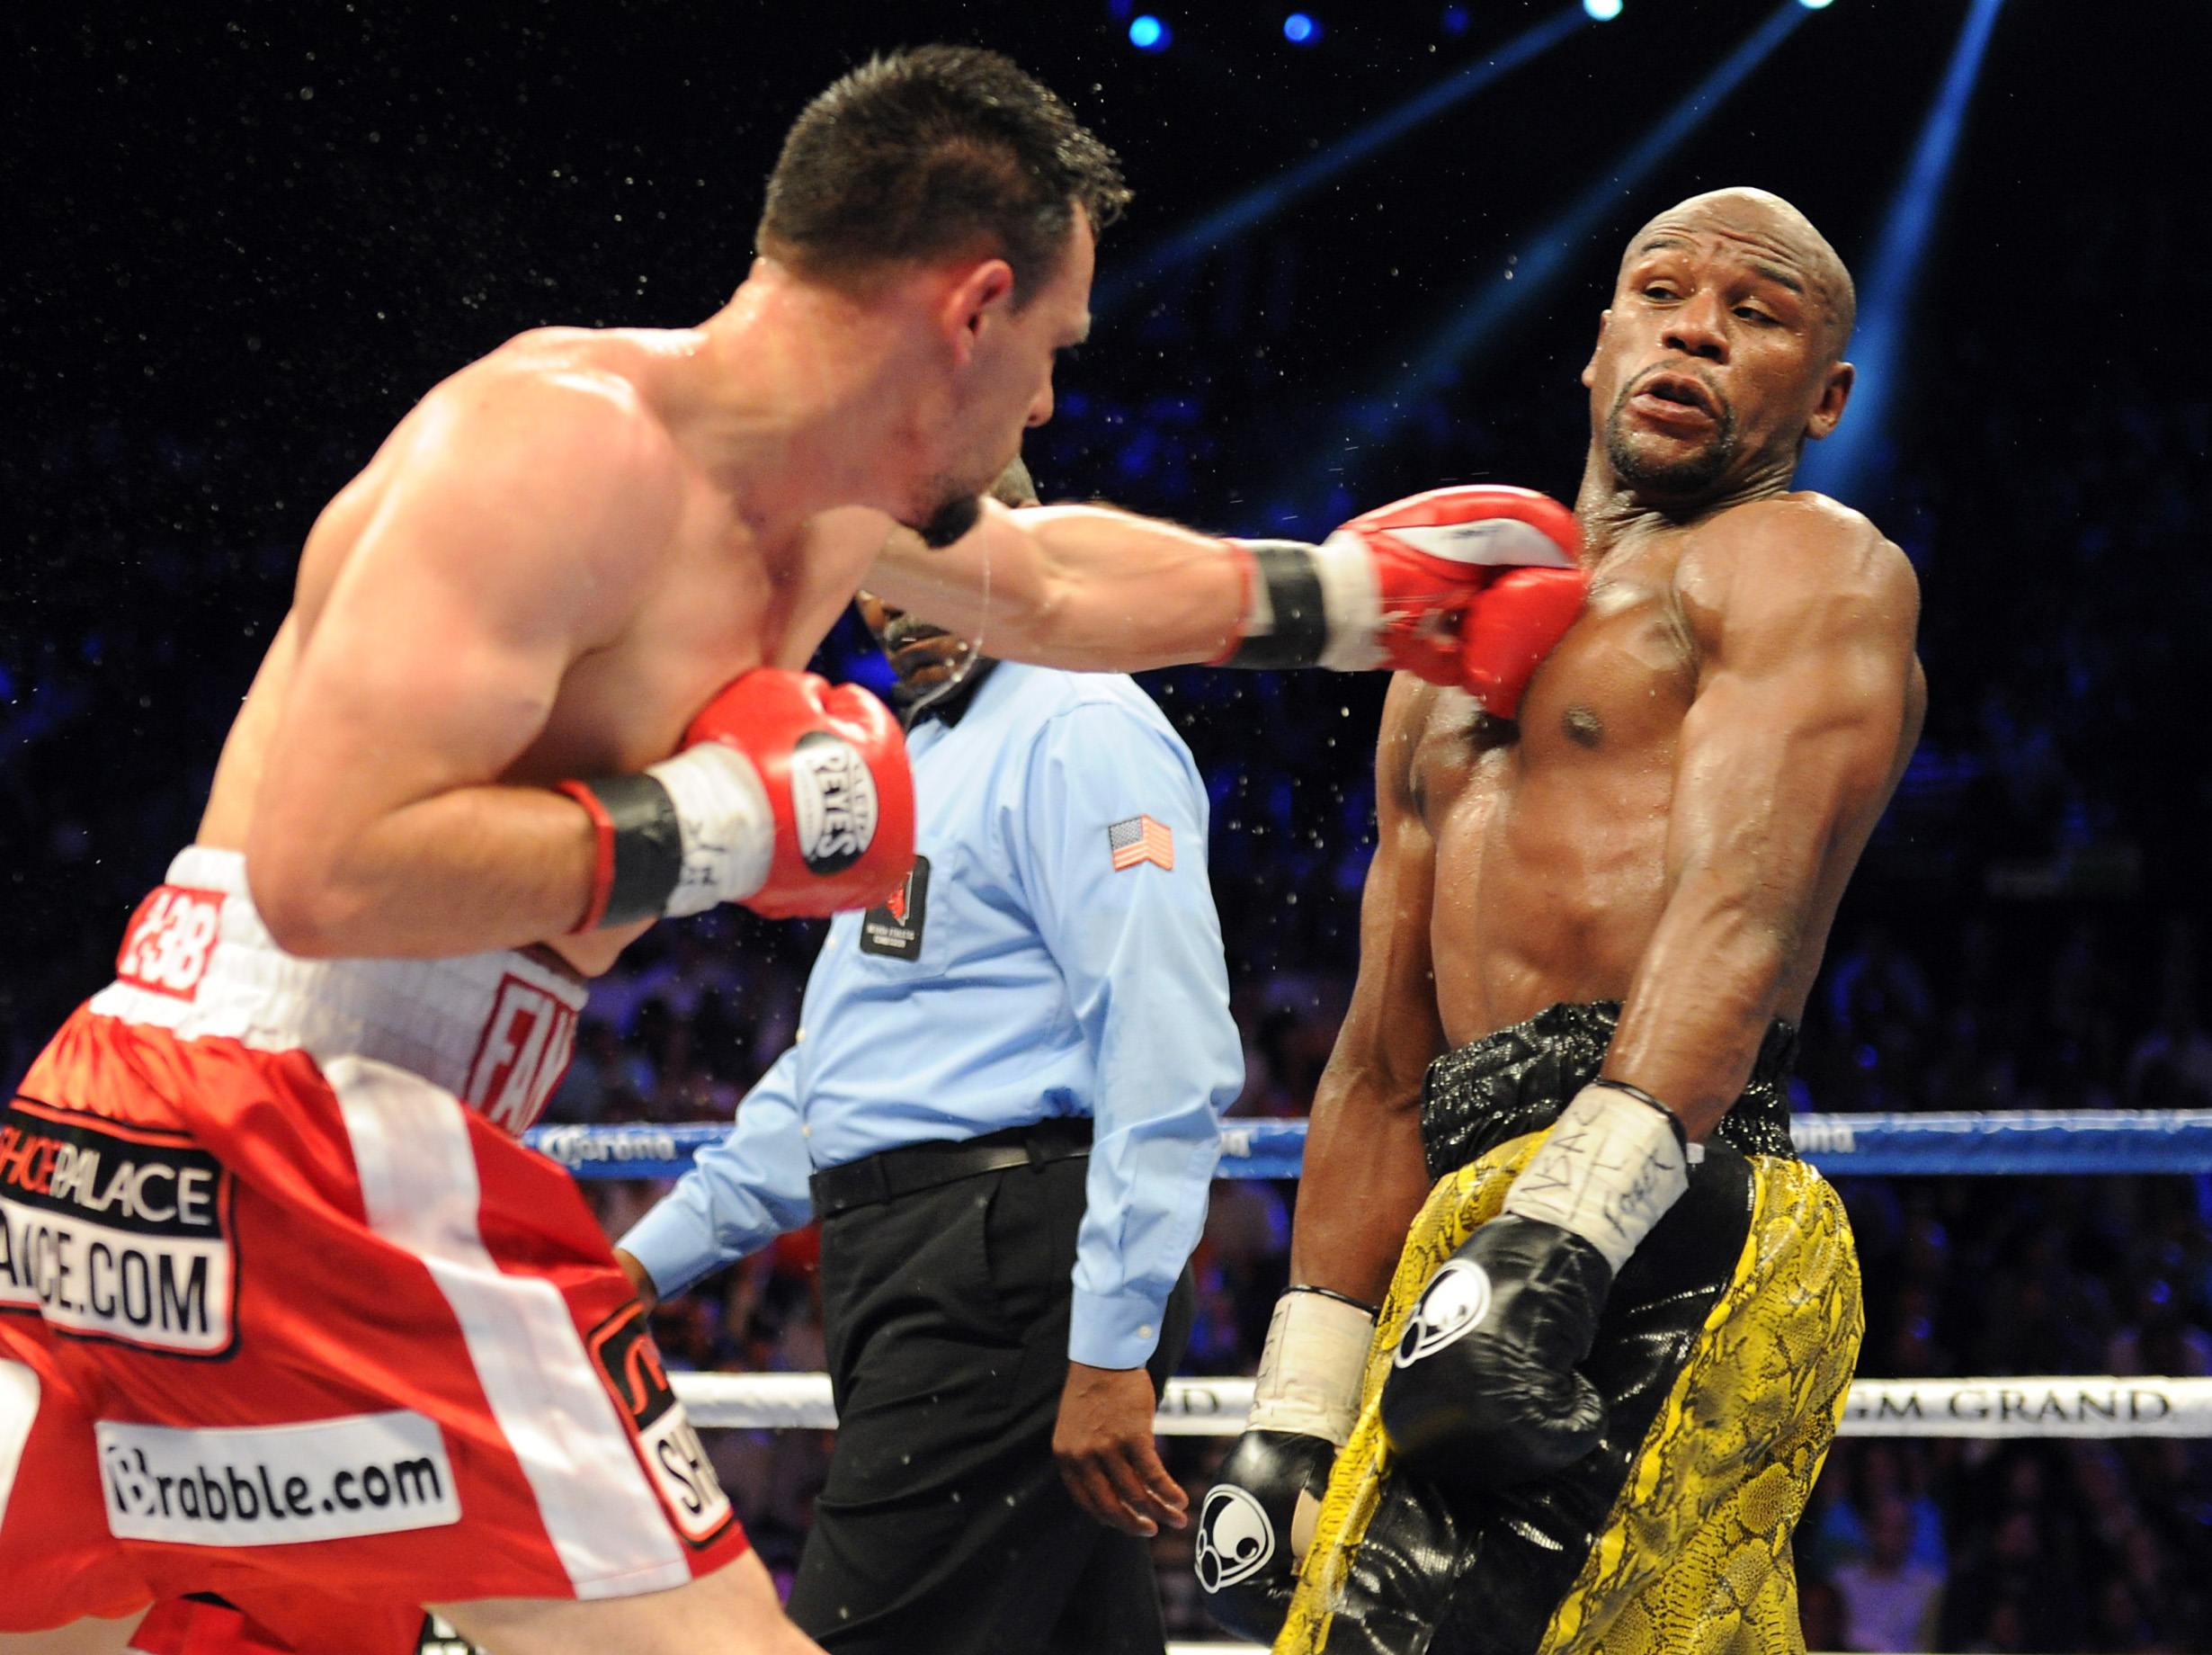 Floyd Mayweather dodges a Robert Guerrero punch. (USA Today)